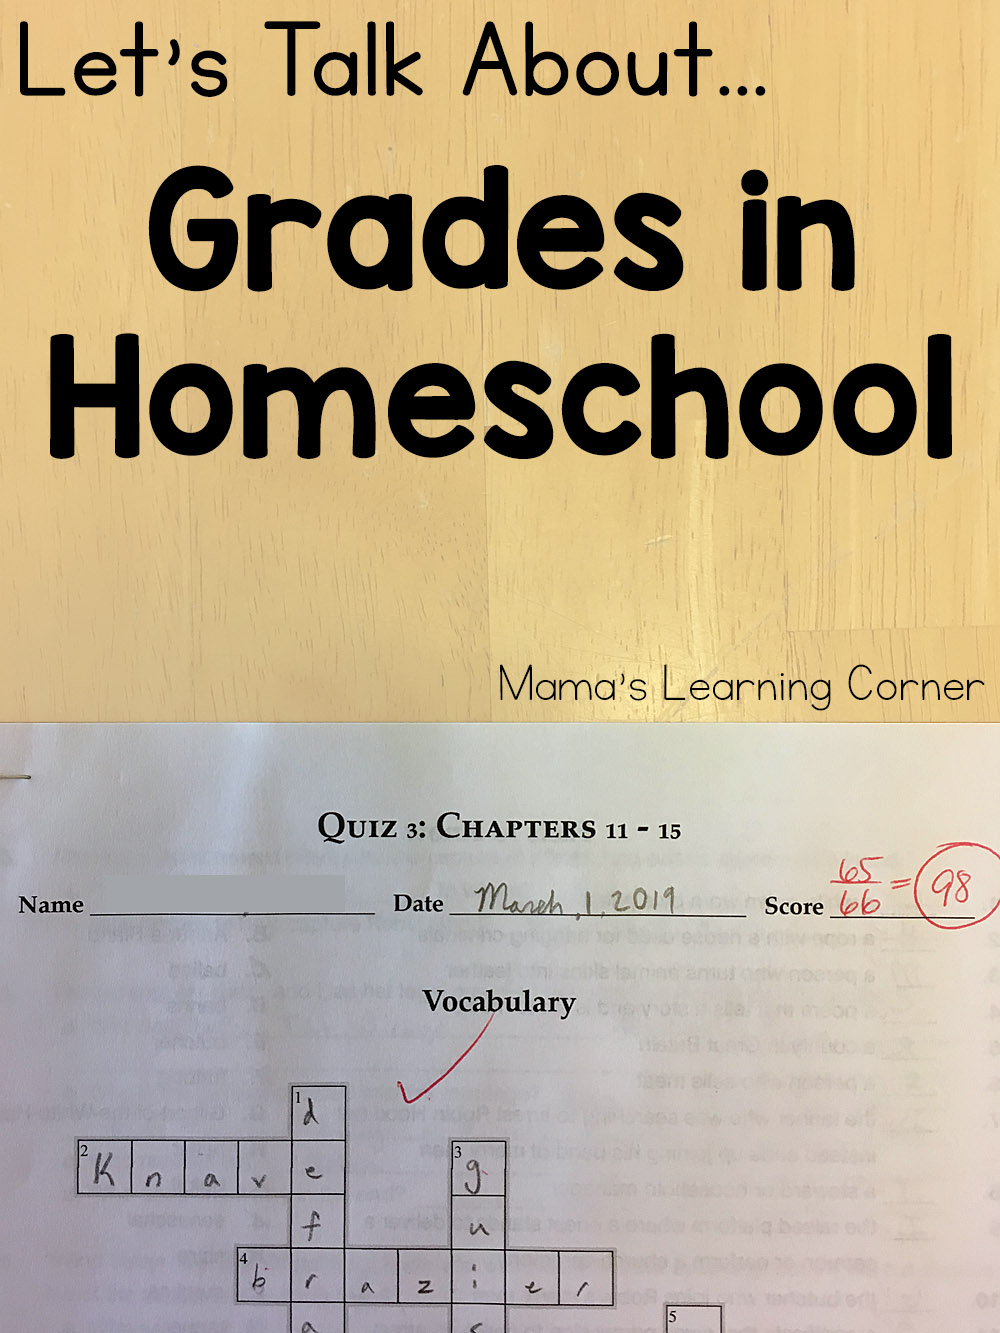 Grades in Homeschool